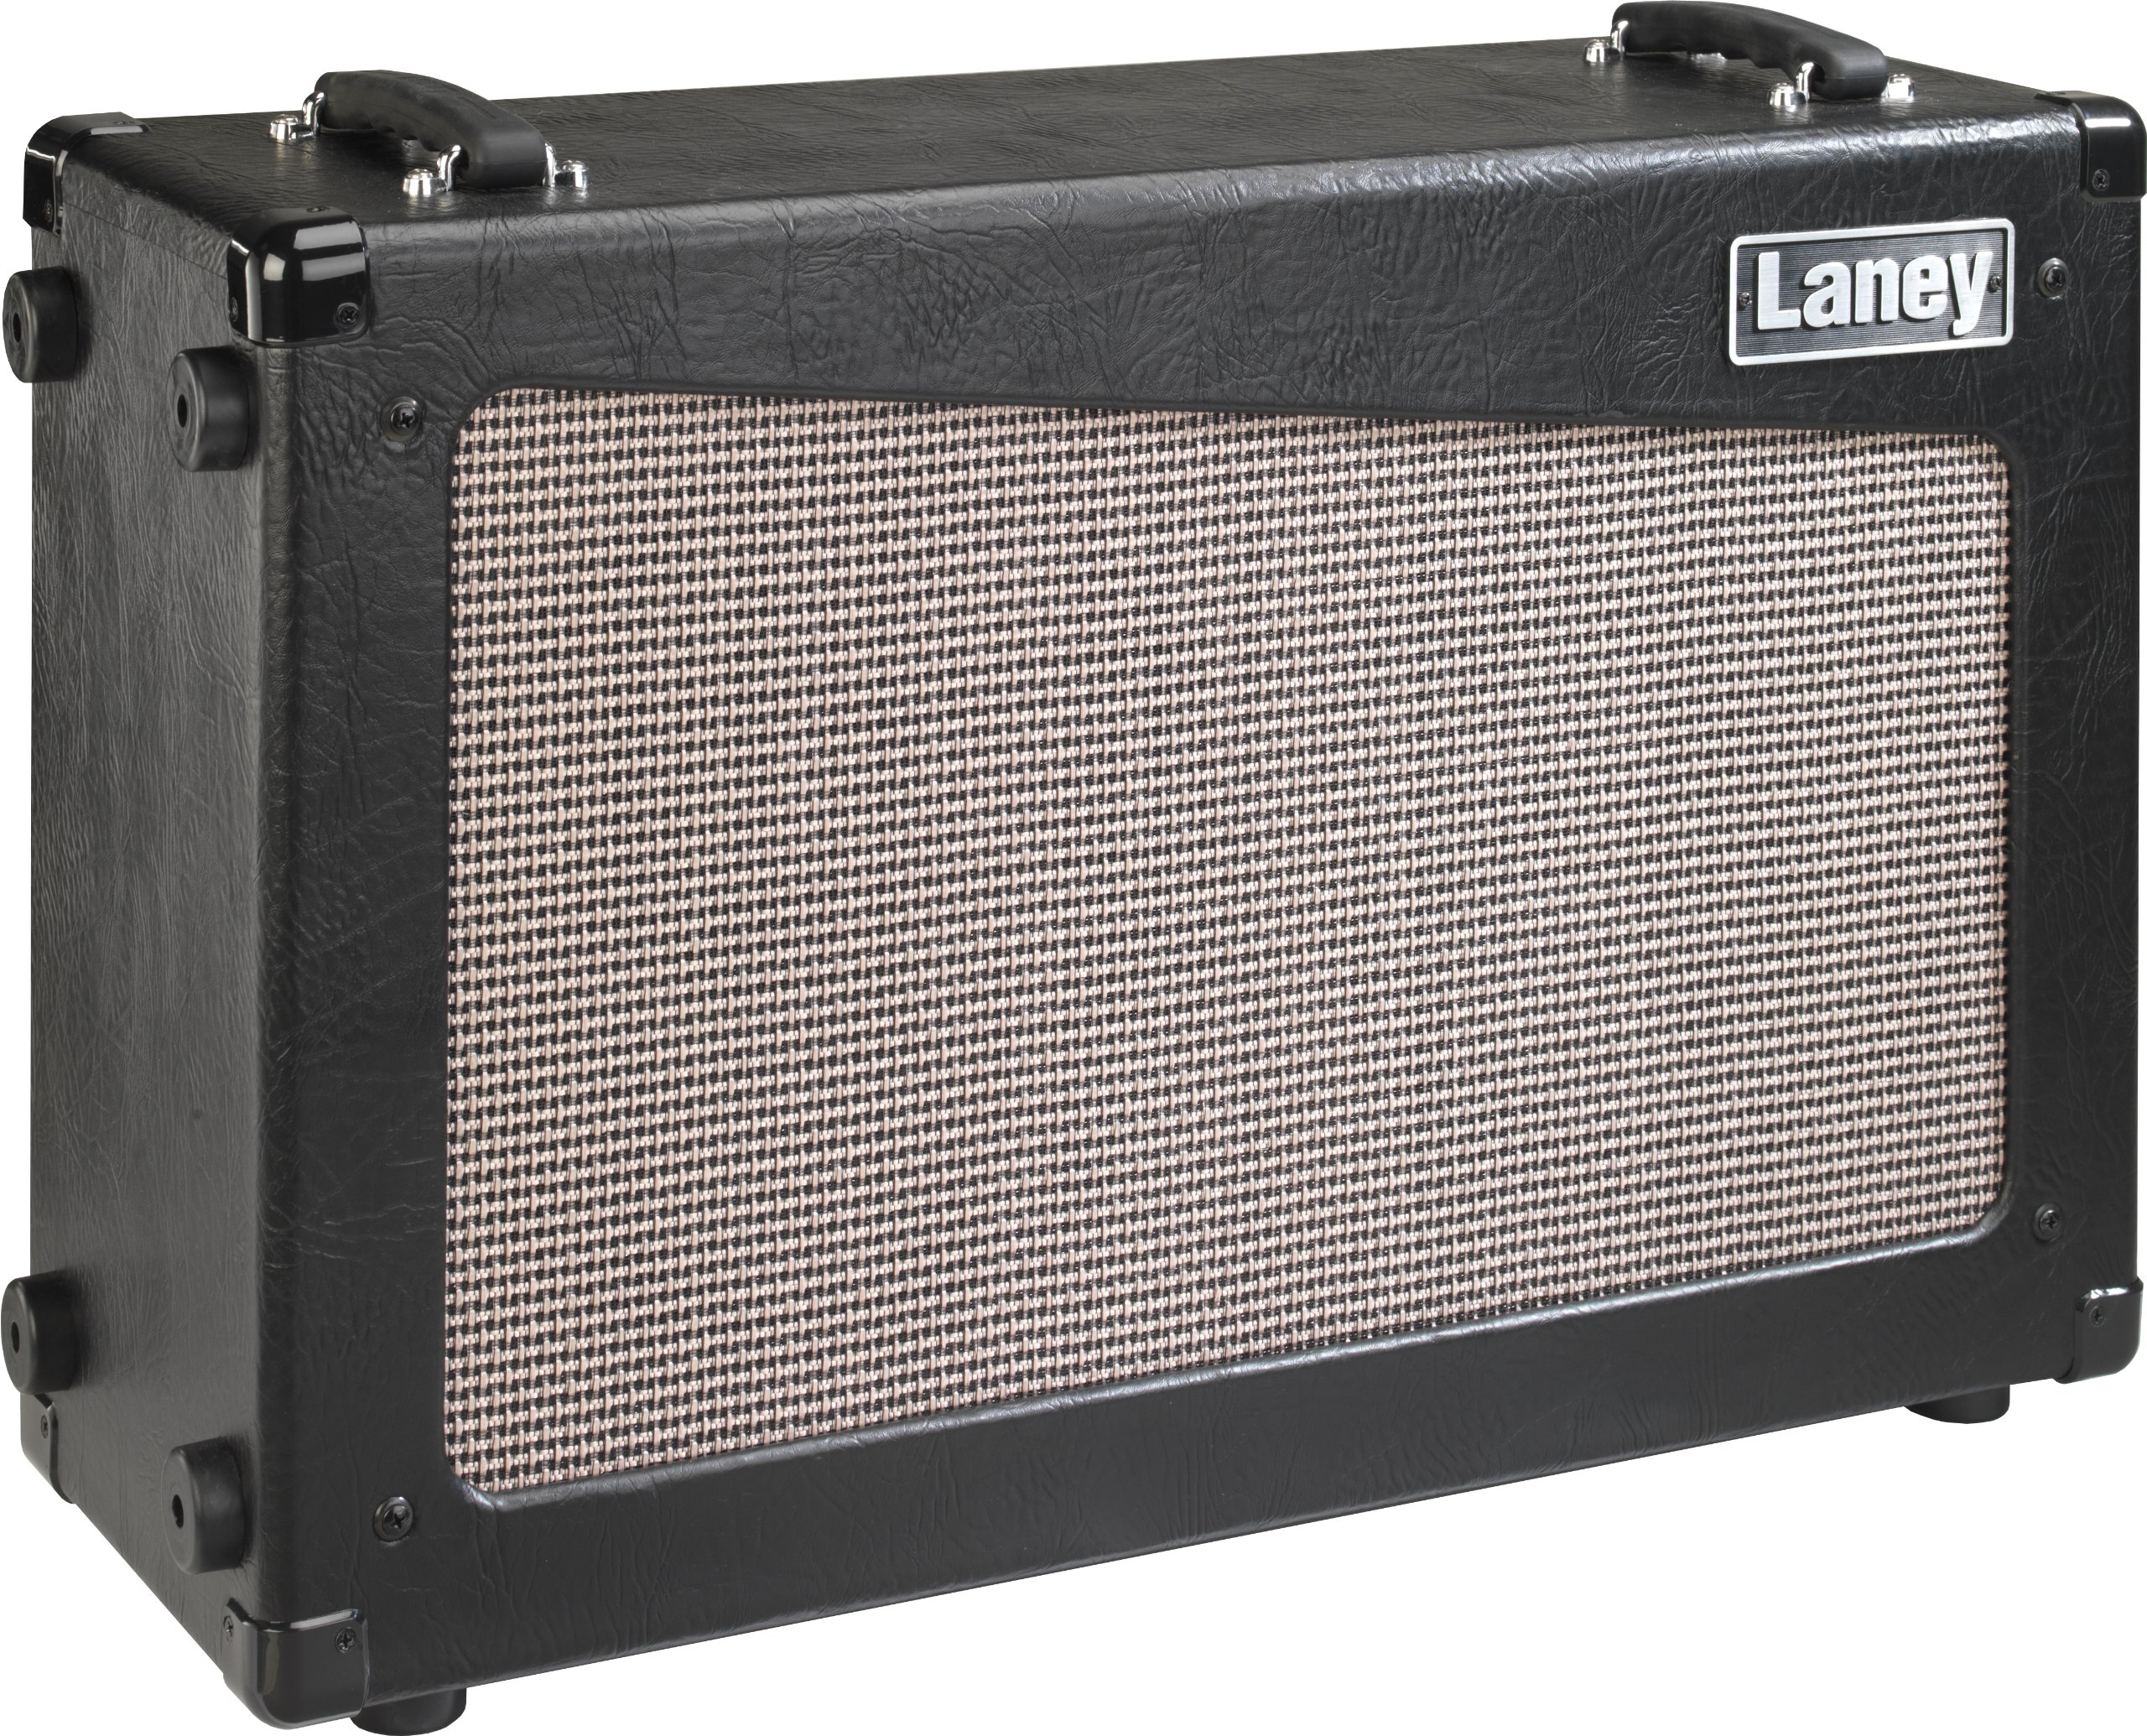 Laney Amps CUB All TUBE Series CUB-CAB 2x12 Guitar Amplifier Cabinet